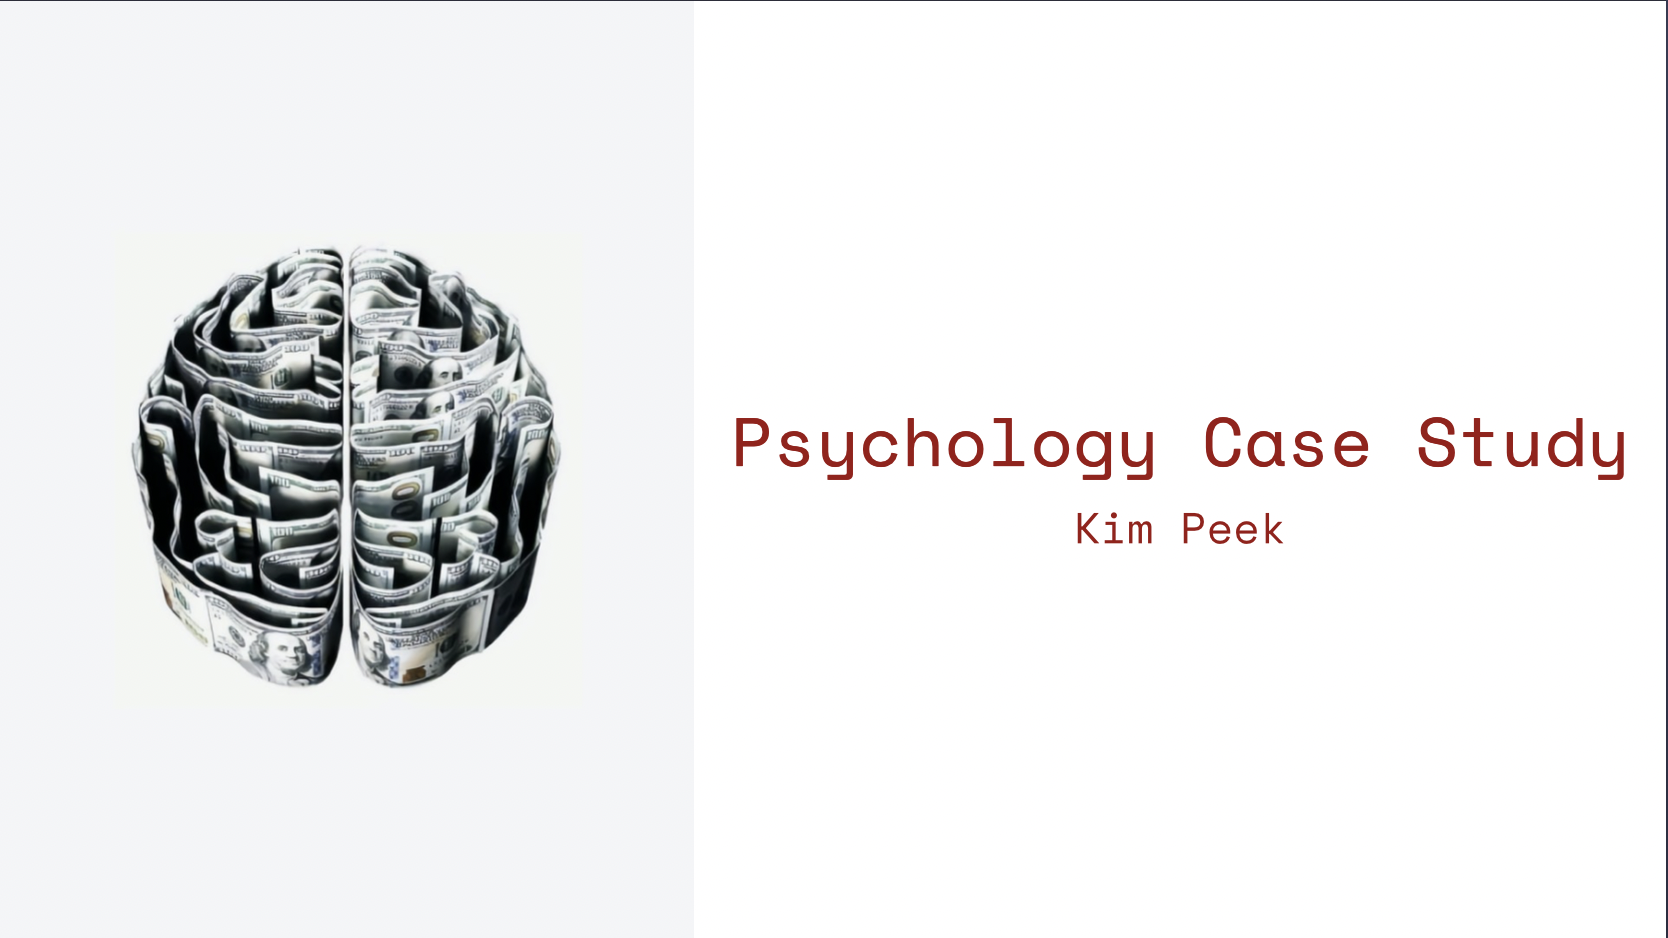 Develop and present psychology case studies with our ready-to-go presentation templates. Try these for developing clinical case presentations to stay on point with academic standards - they'll make you look so professional! Improve the way your computer scrambles information, because when it comes to presentation templates... nothing can compare.